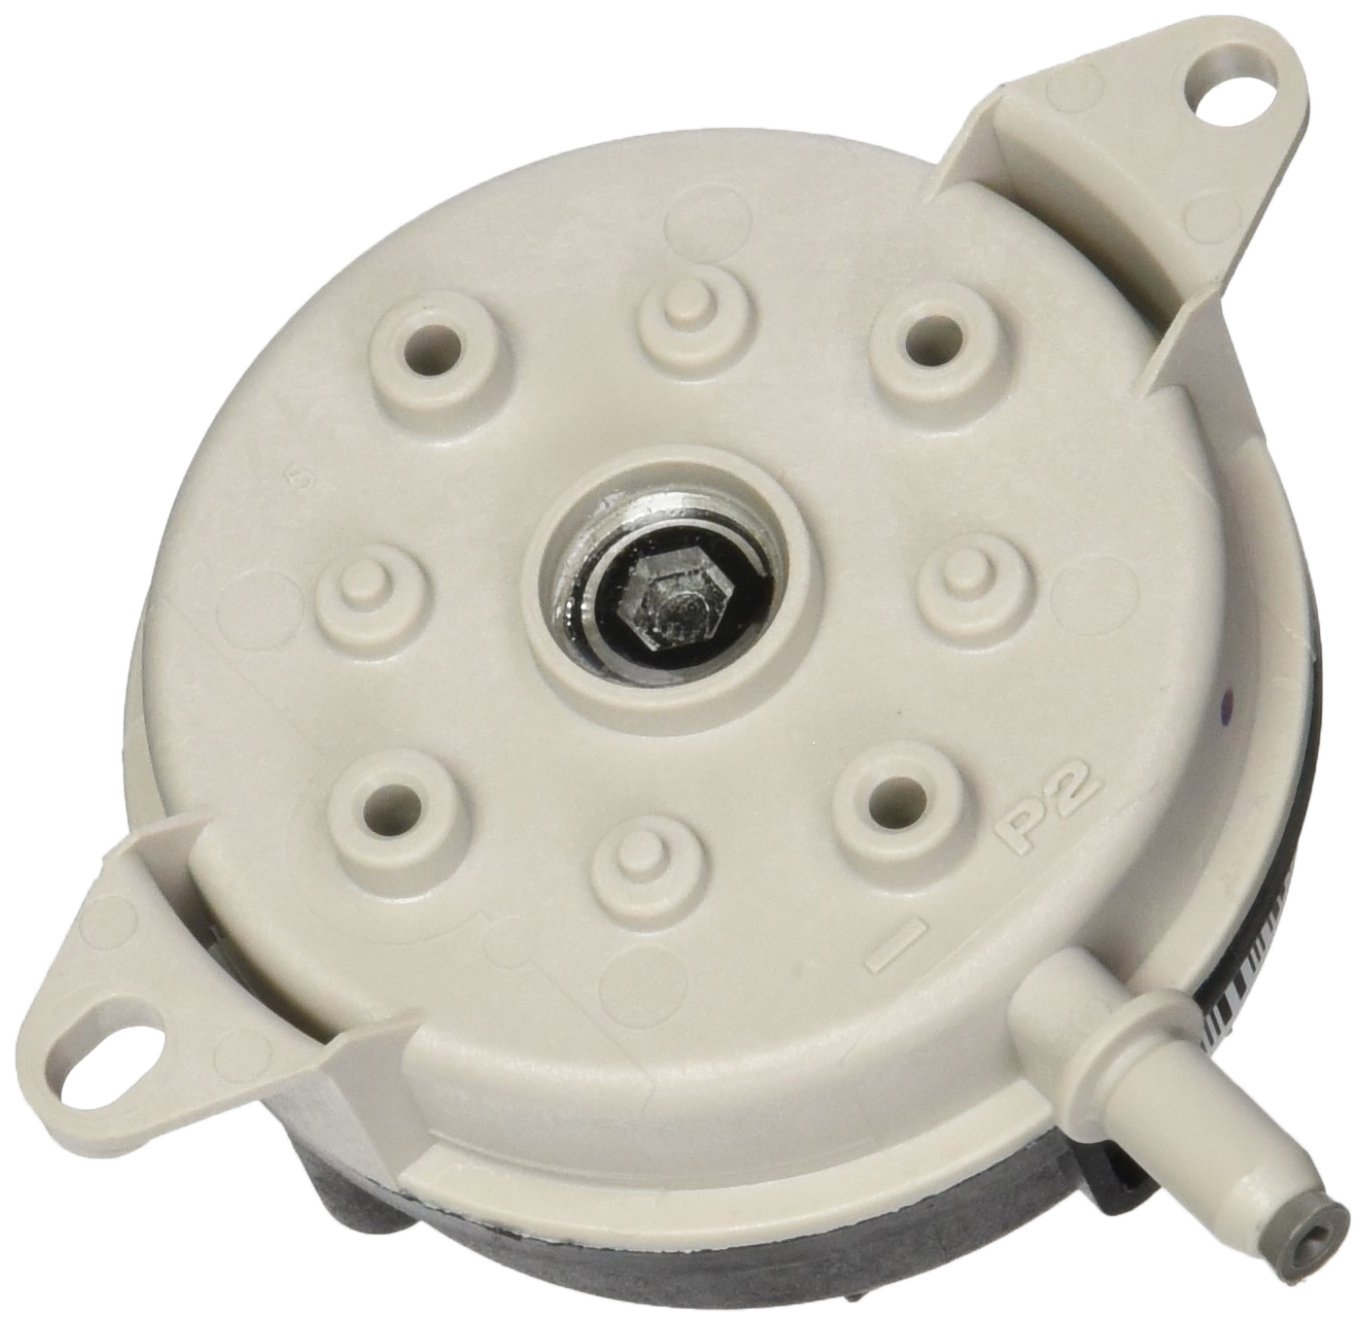 Pentair Minimax Pool Heater Repair Details About Part 472100 Ddtc Circuit Board Assembly Get Quotations 472183 Violet Air Pressure Switch Replacement And Spa